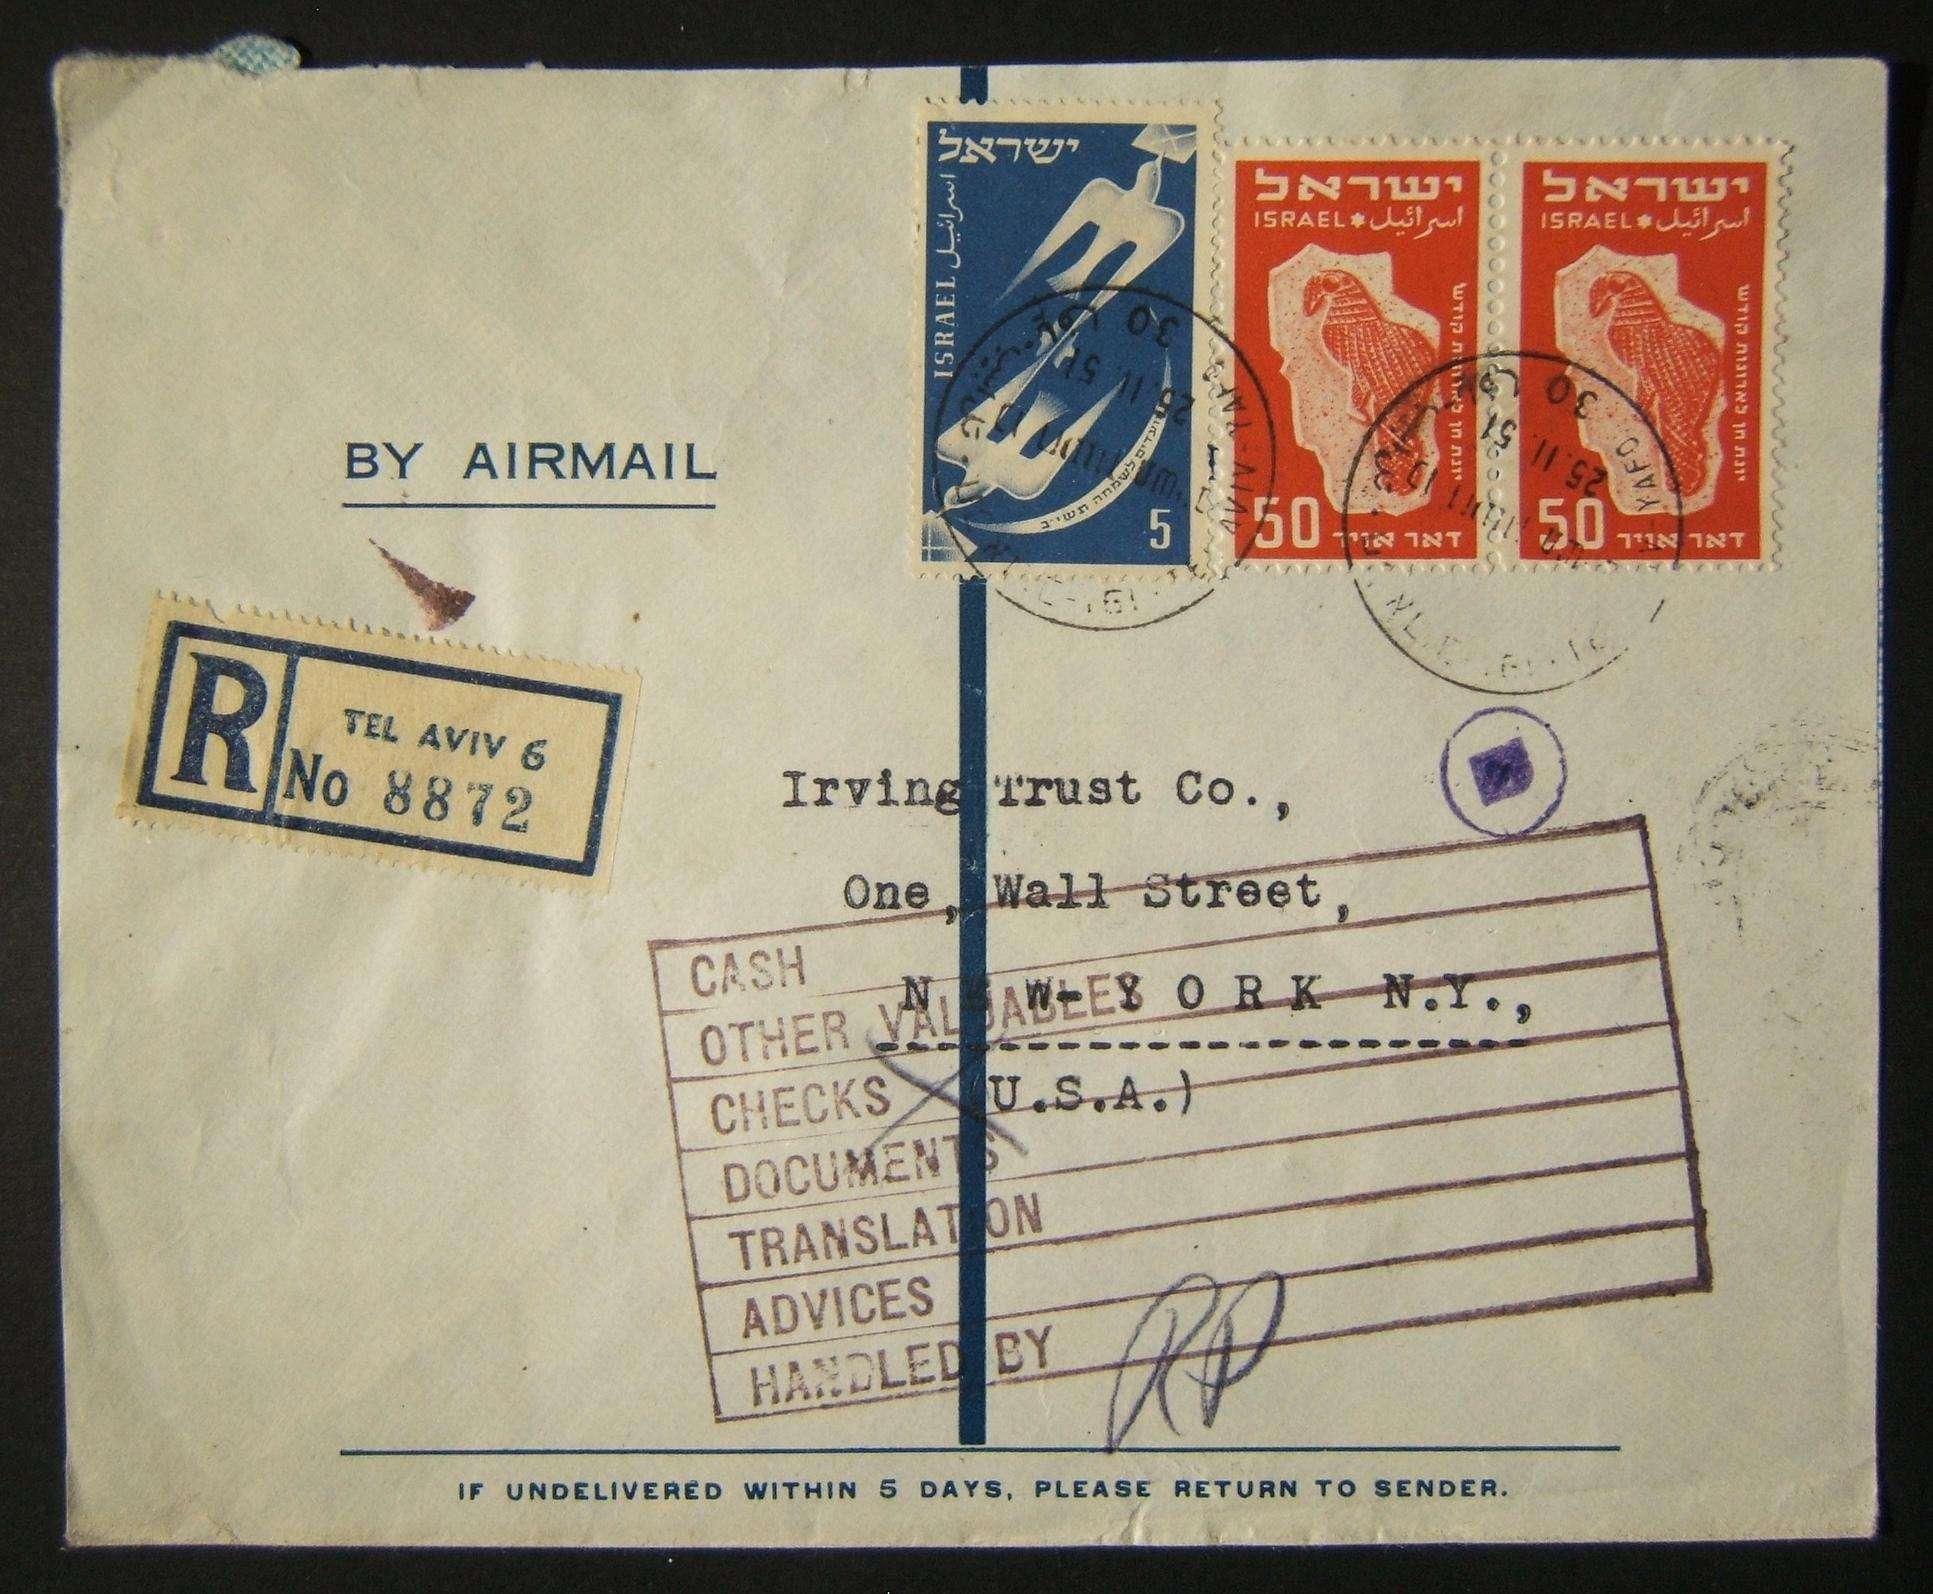 1950 1st airmail / PO's, rates & routes: 25-11-1951 business stationary registered airmail commercial cover ex TLV to NYC, franked 105pr at the FA-2a period rate (80pr letter + 25p